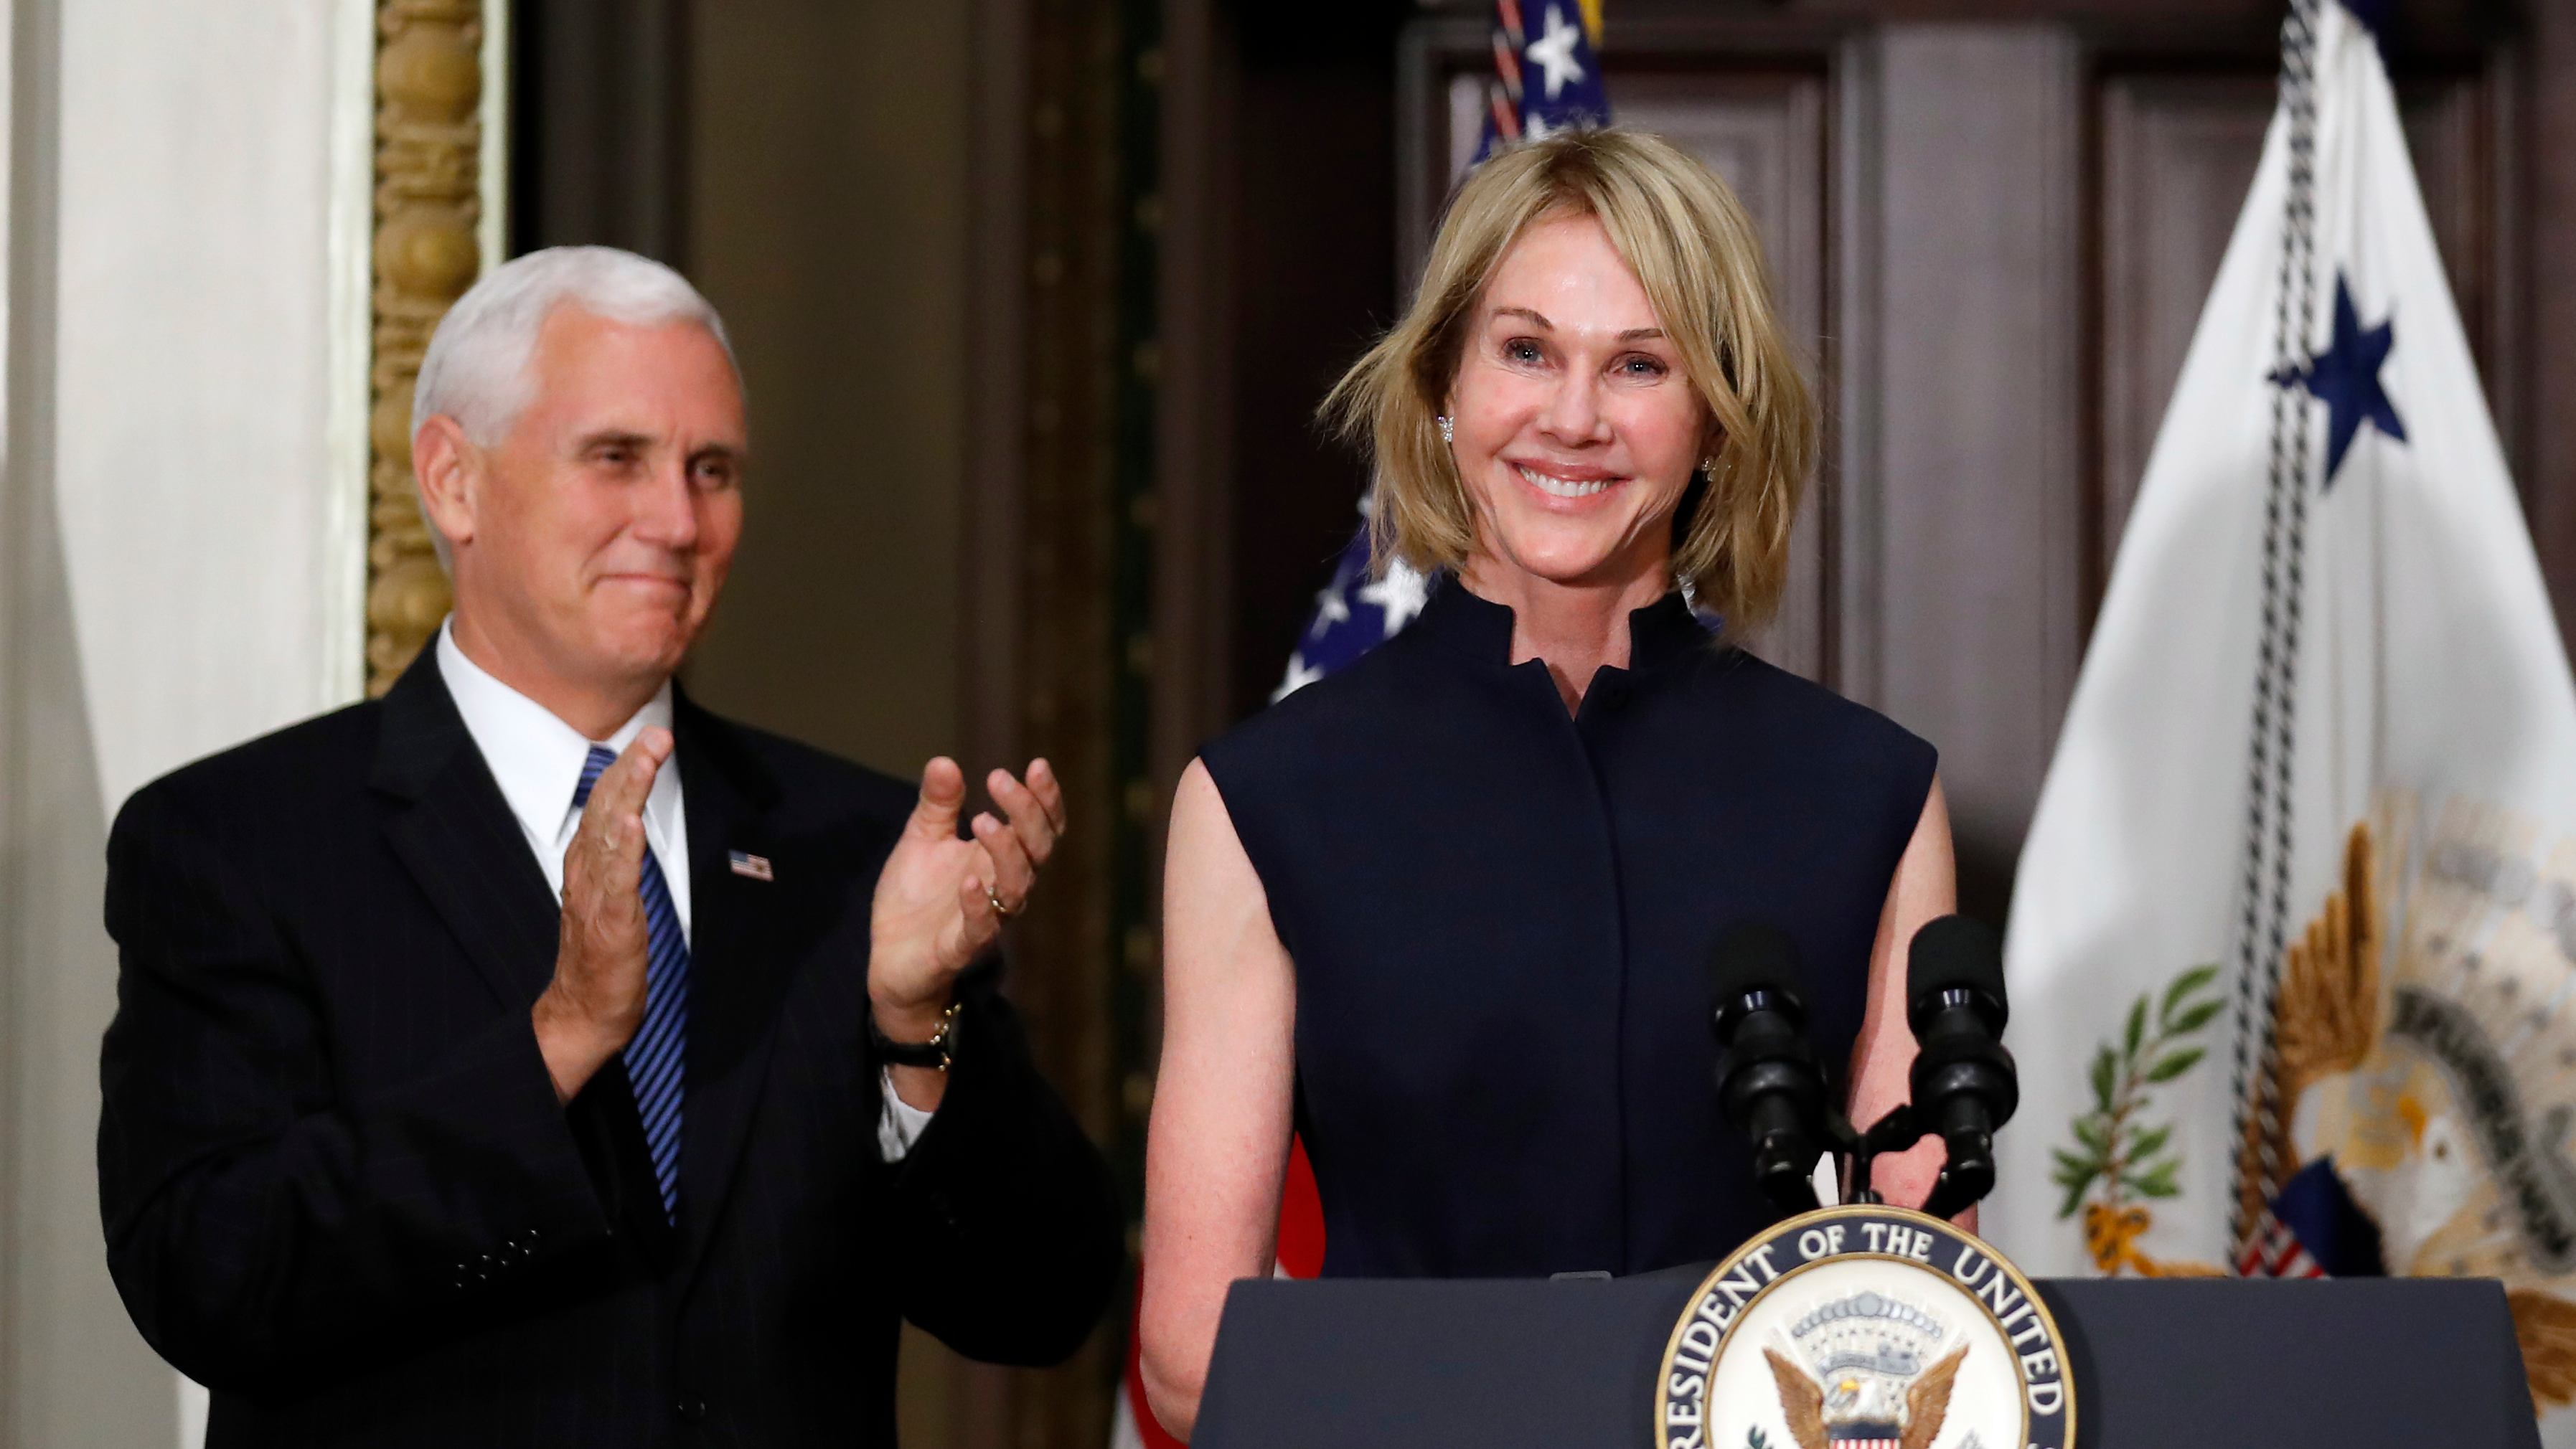 Kelly Knight Craft, Trump's Pick for UN Ambassador, Once Said She Believed 'Both Sides' of Climate Change